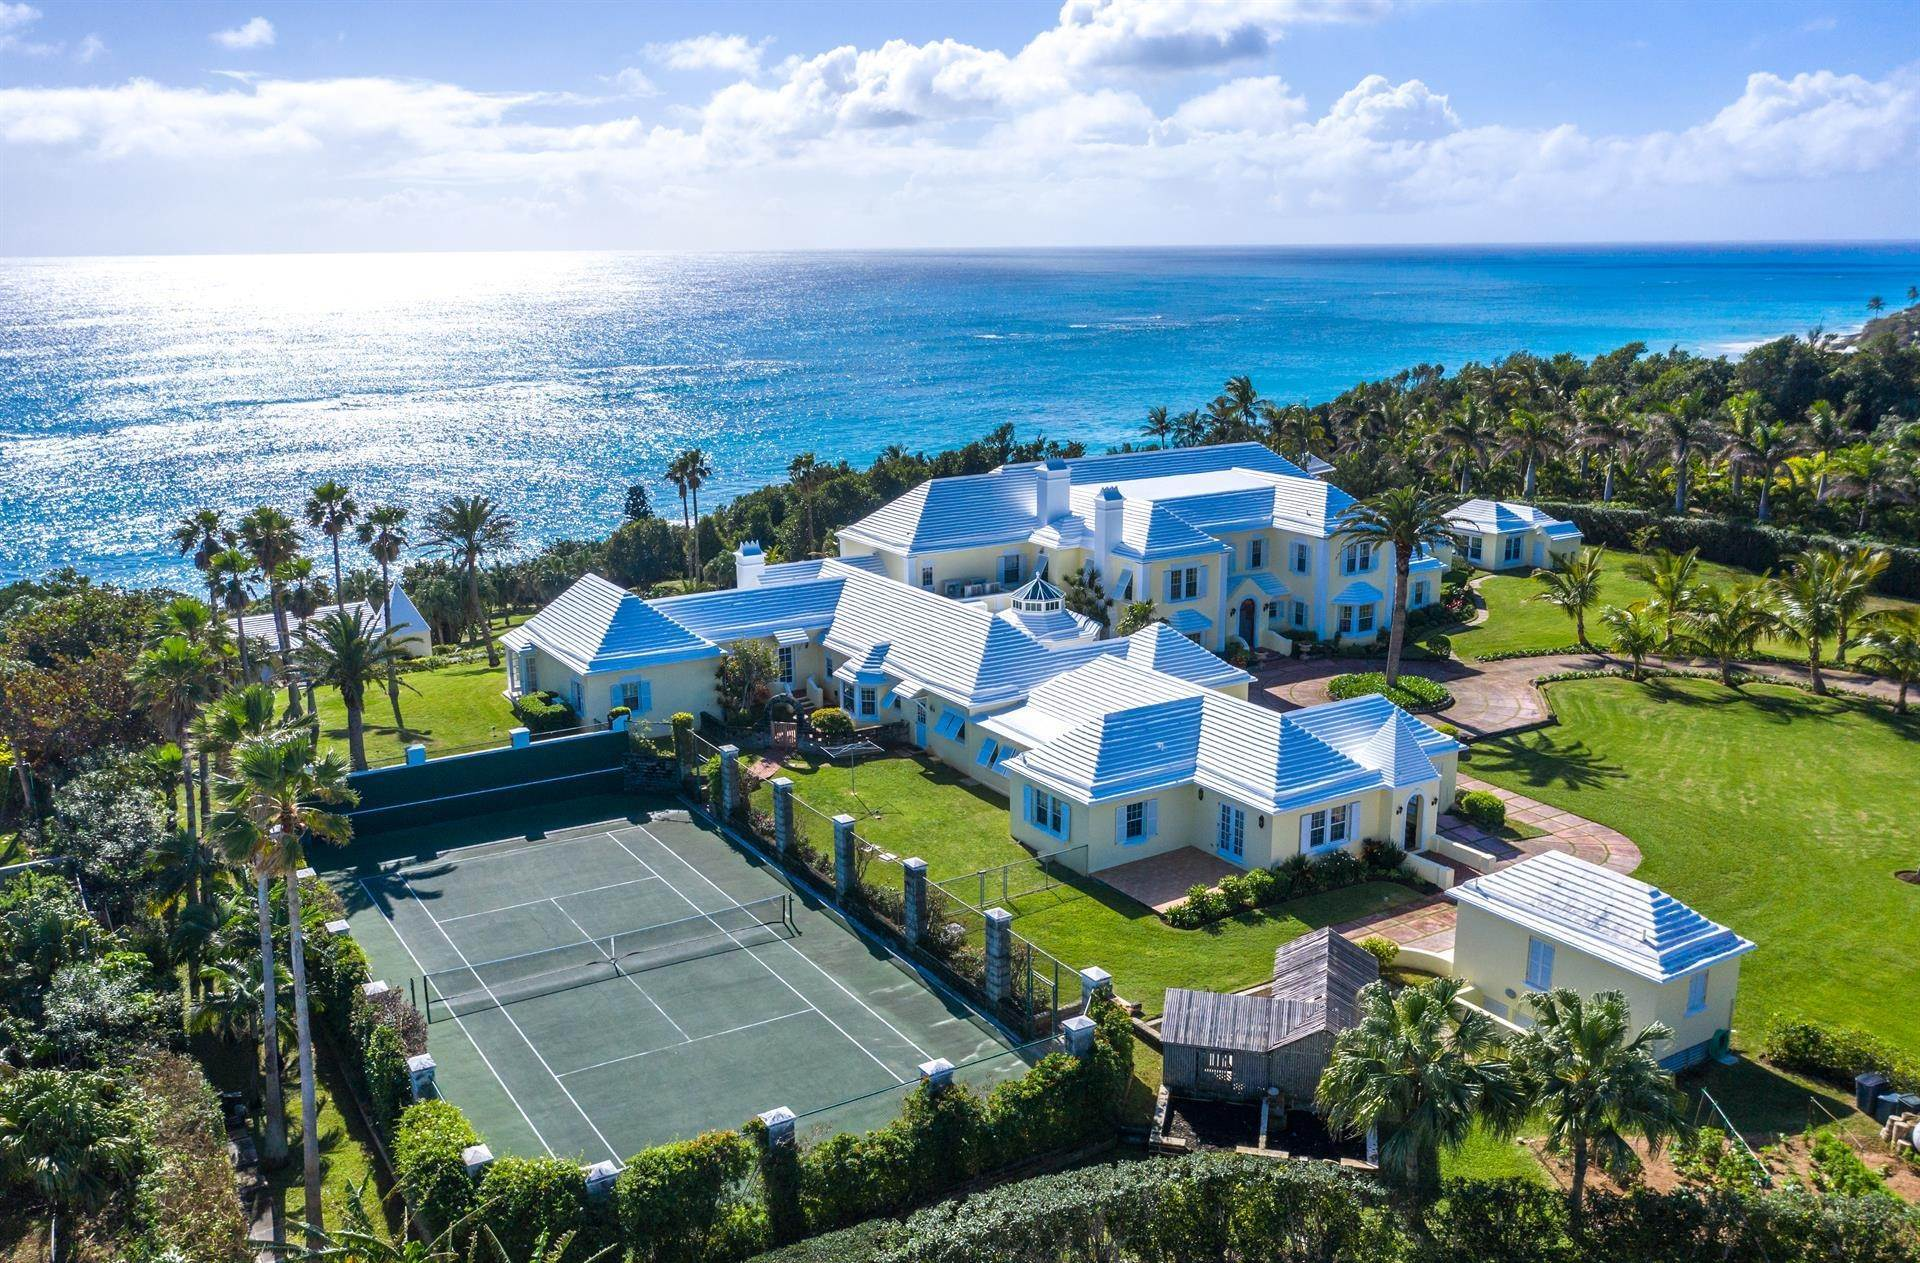 29. Waterfront Property for Sale at Agapanthus On Grape Bay Agapanthus On Grape Bay, 11 Inglewood Lane,Bermuda – Sinclair Realty